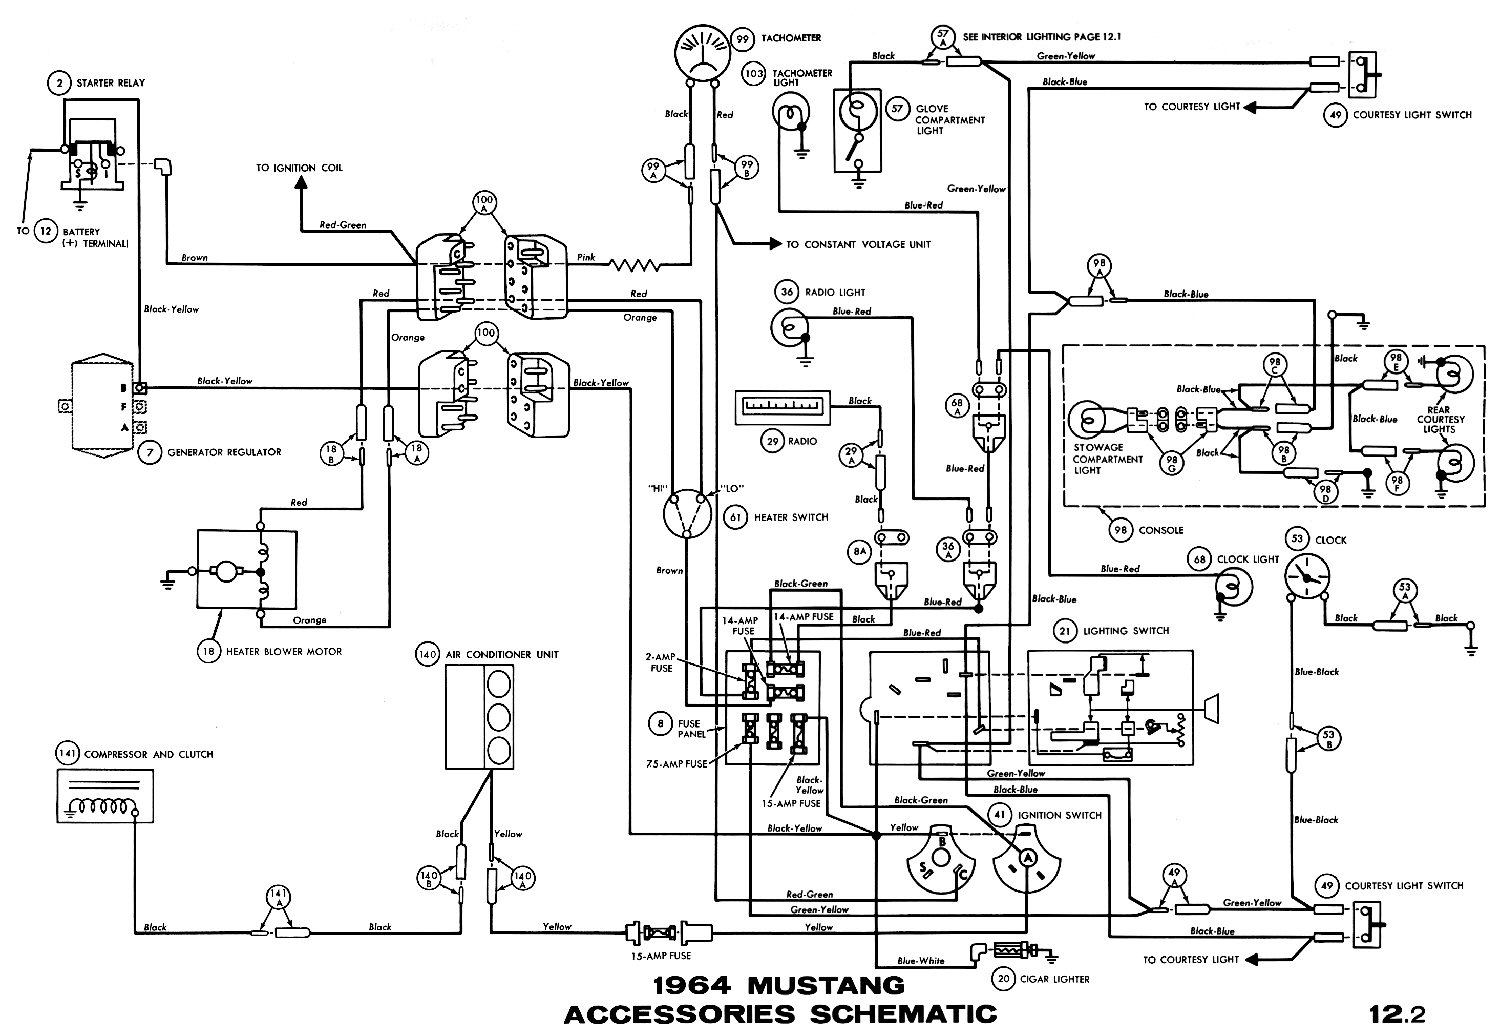 1964m 2015 mustang wiring diagram schematic mustang 2015 \u2022 free wiring 1965 ford mustang wiring diagrams at panicattacktreatment.co